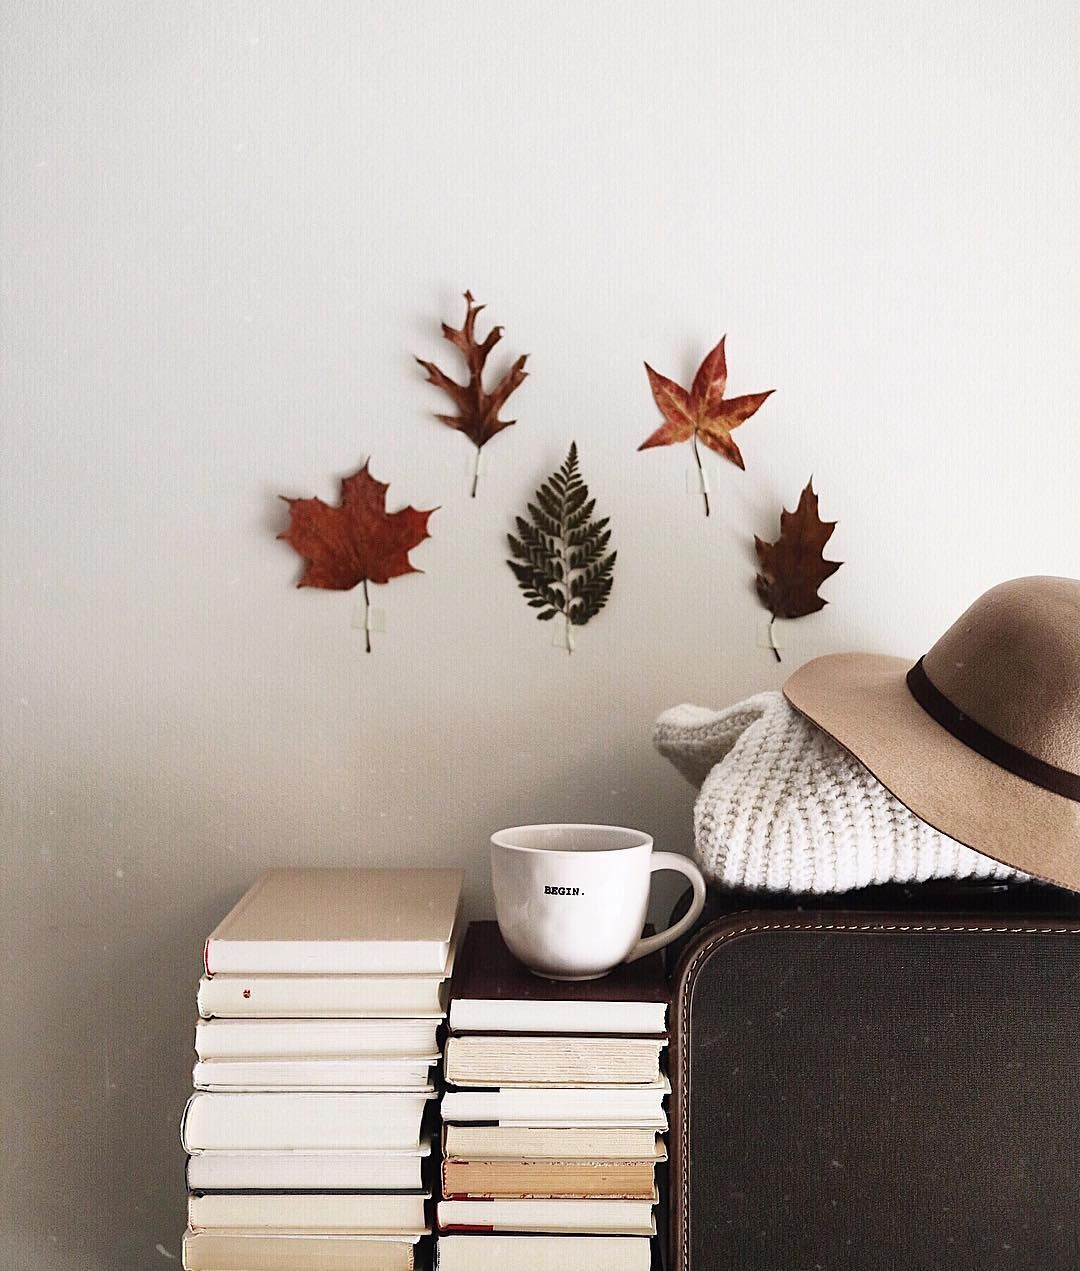 Books coffee mug and autumn leaves my type of decor  Chambres